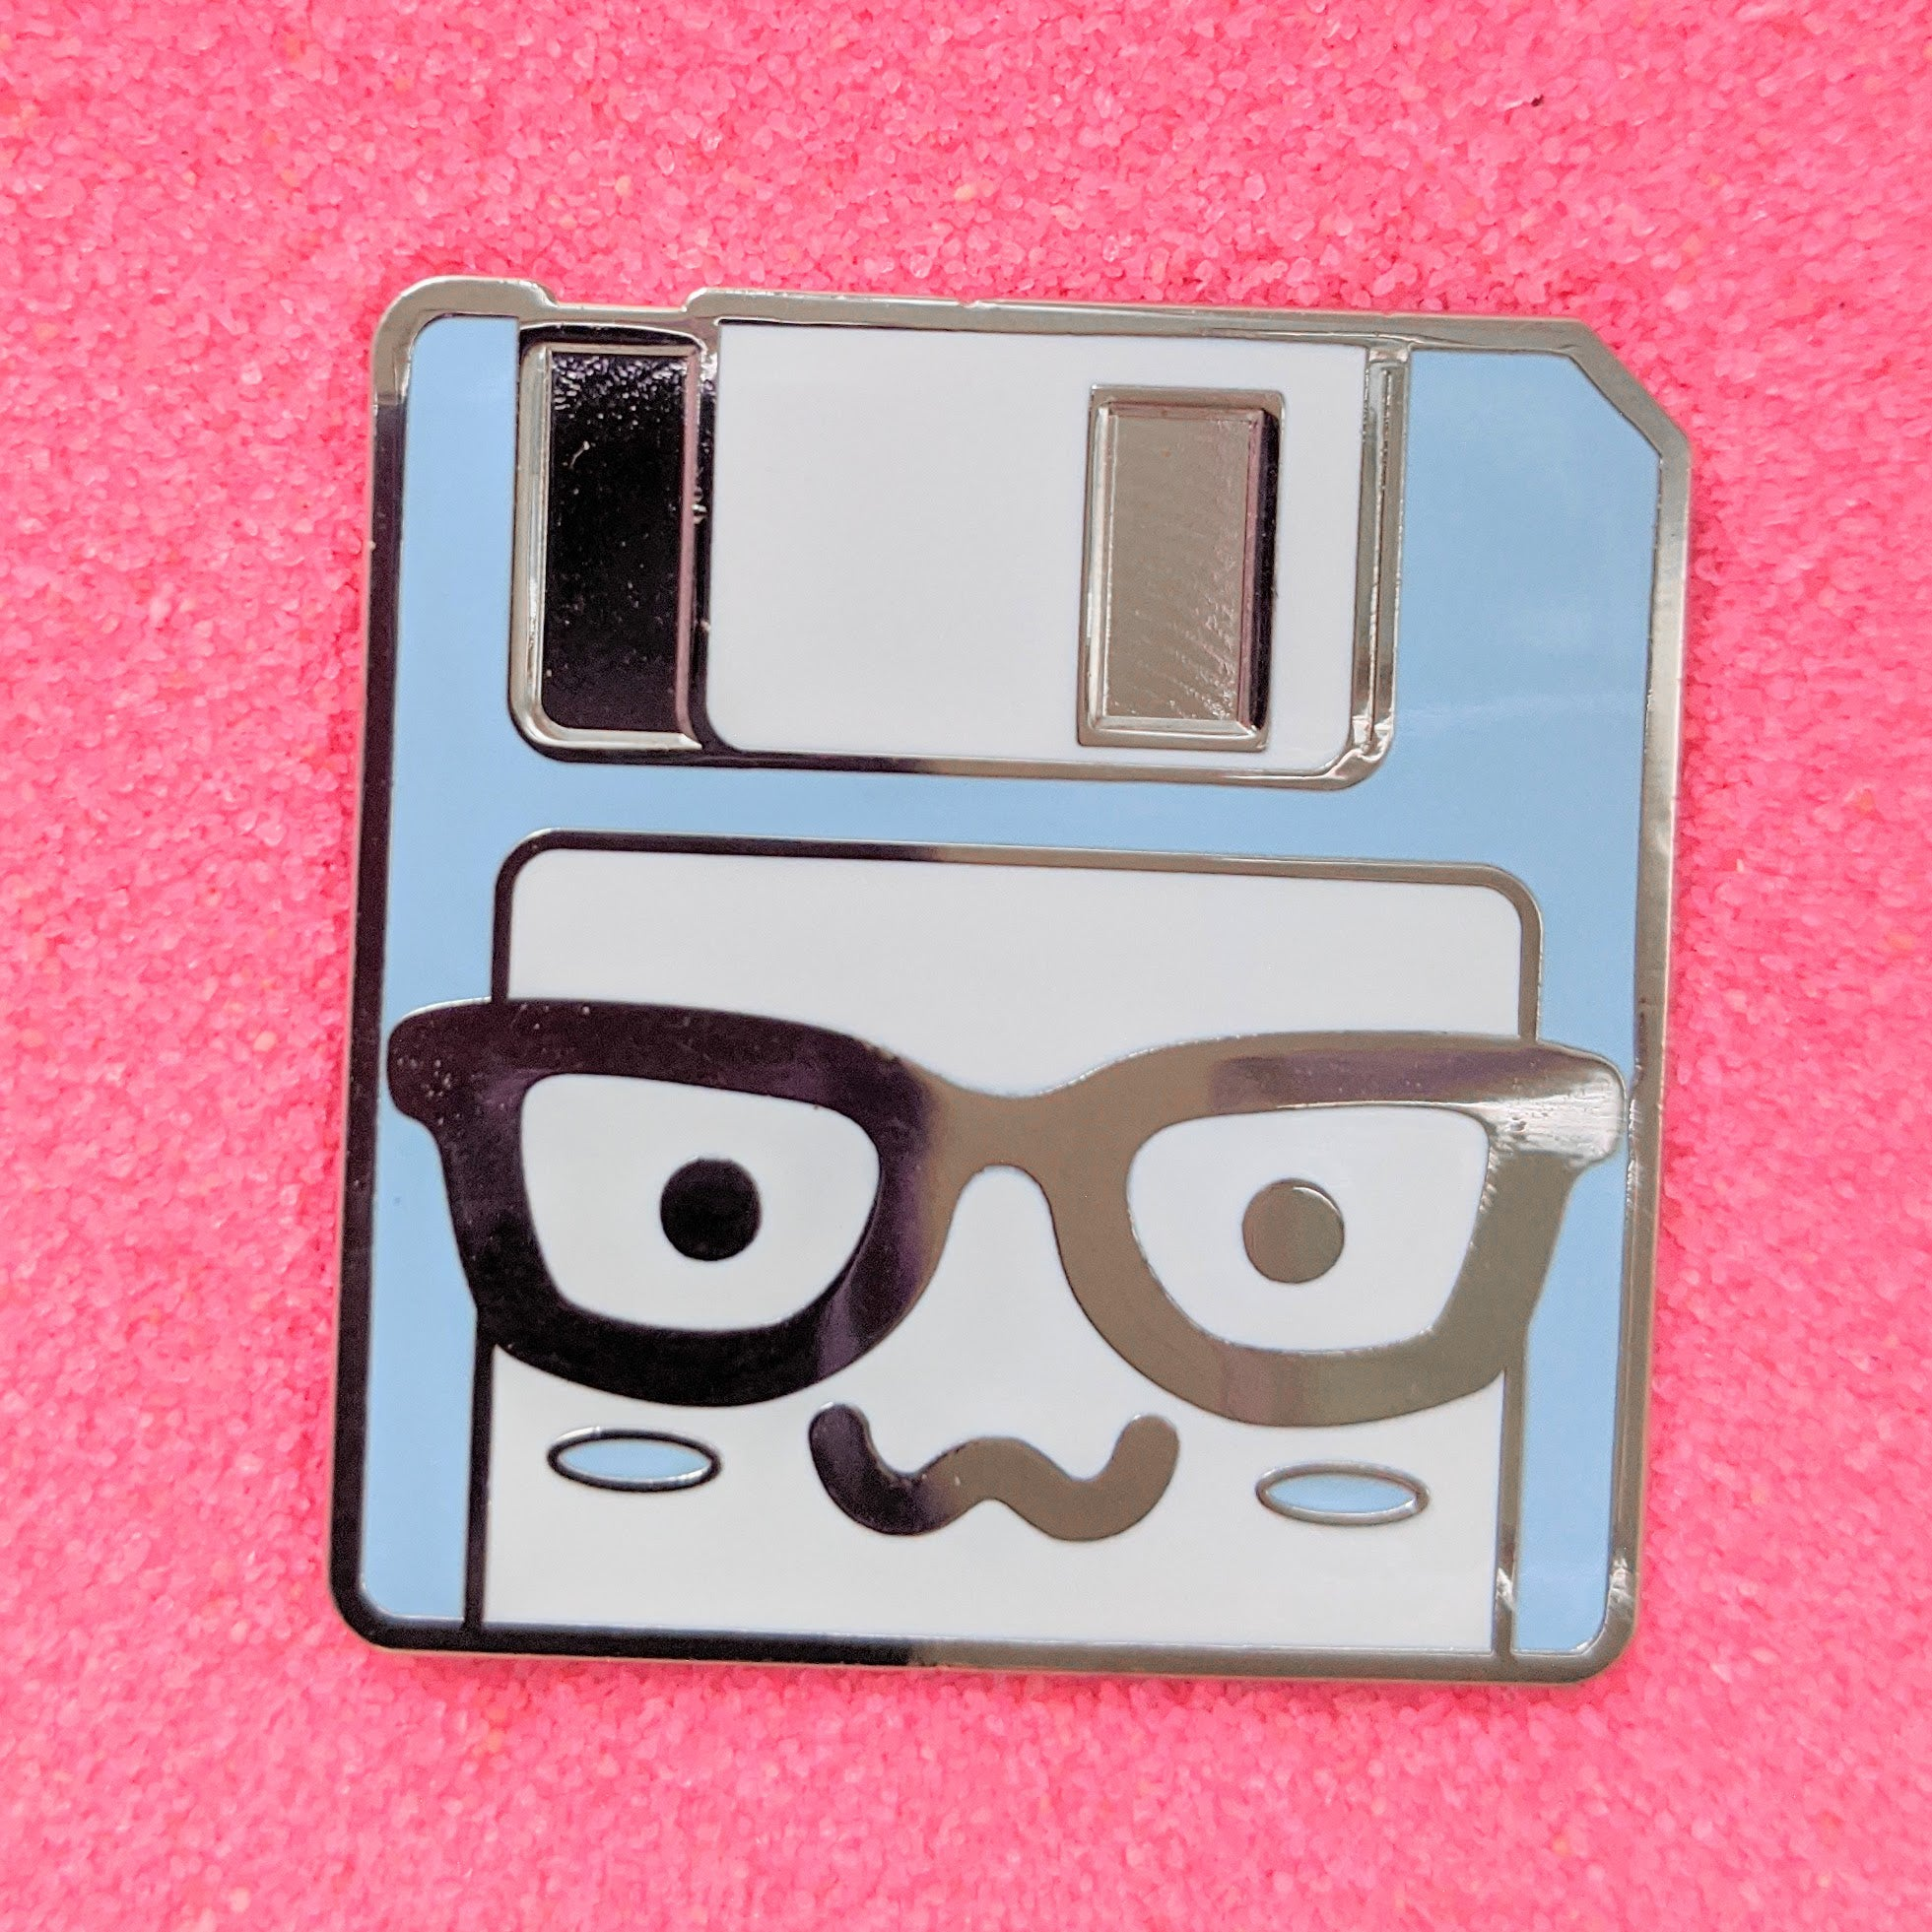 Blue Floppy Disk - Enamel Pin